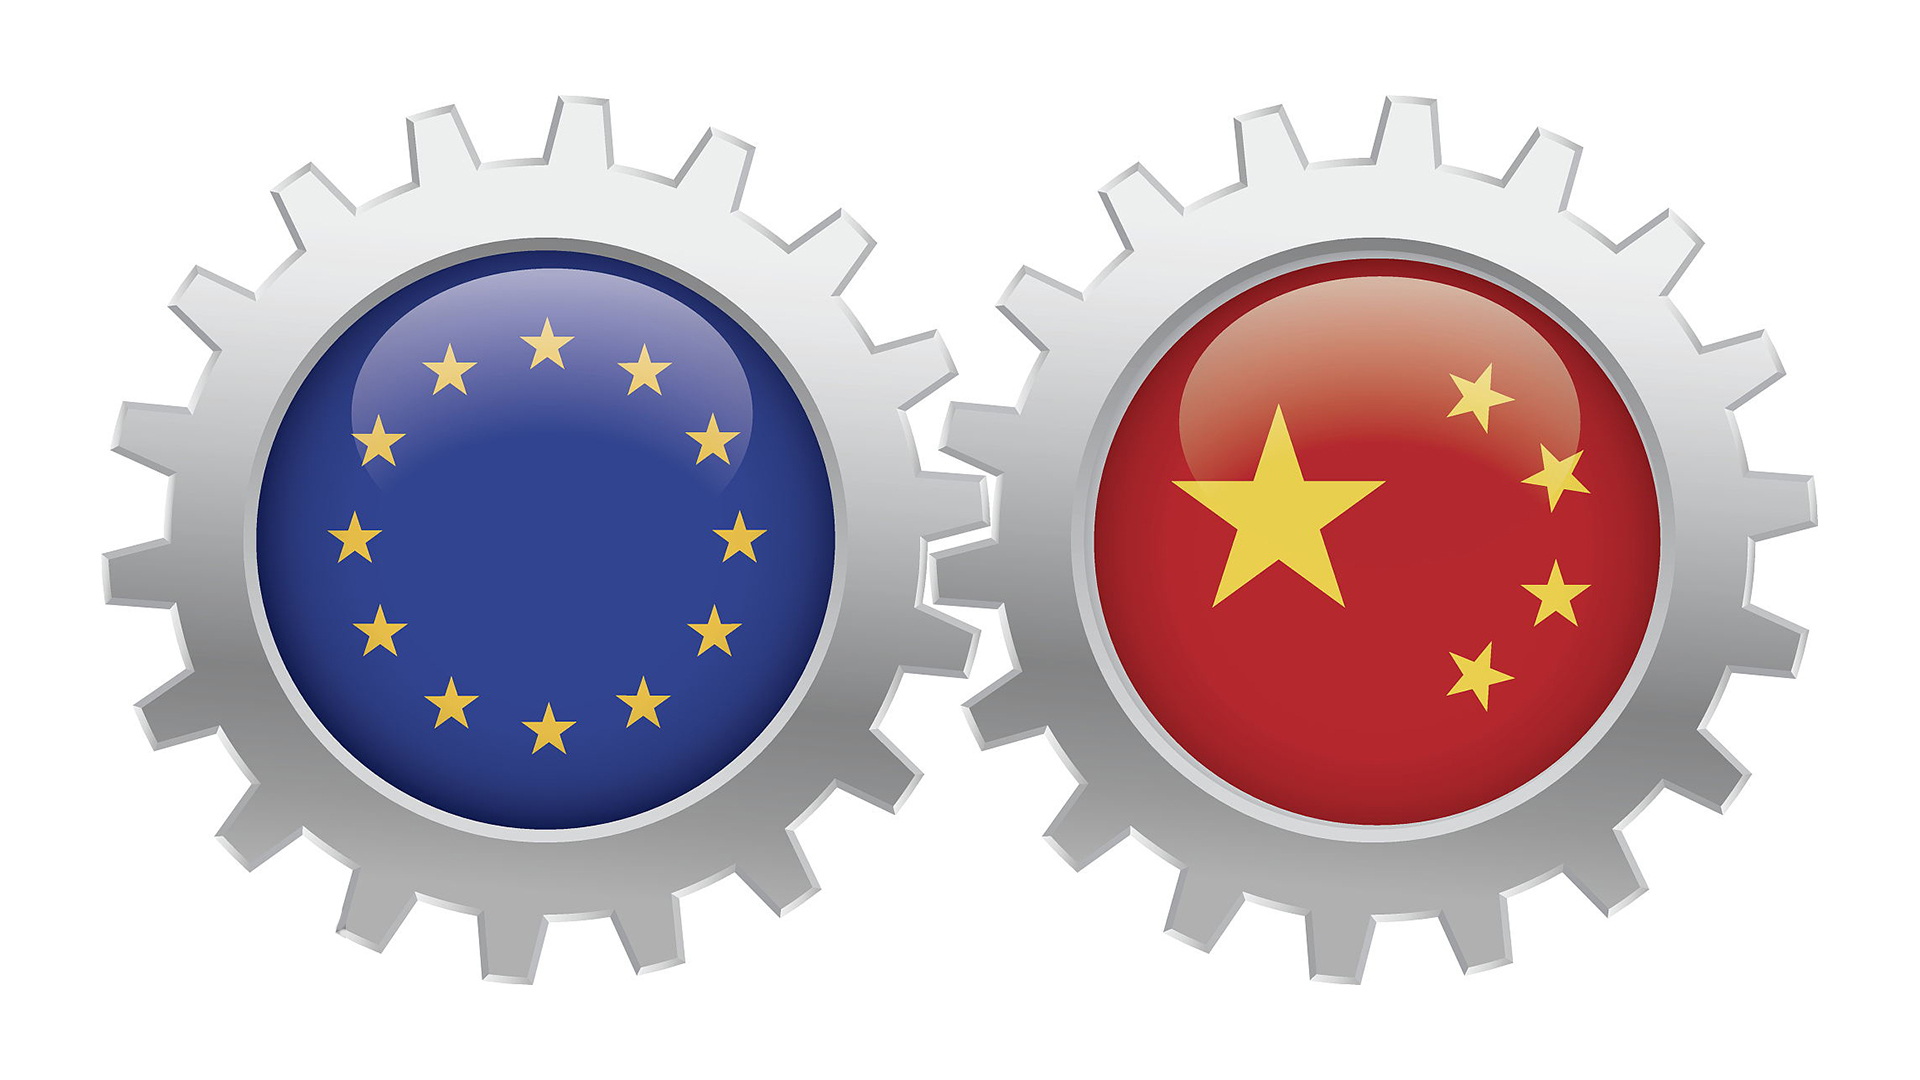 China and EU: Both against protectionism, but different on some issues